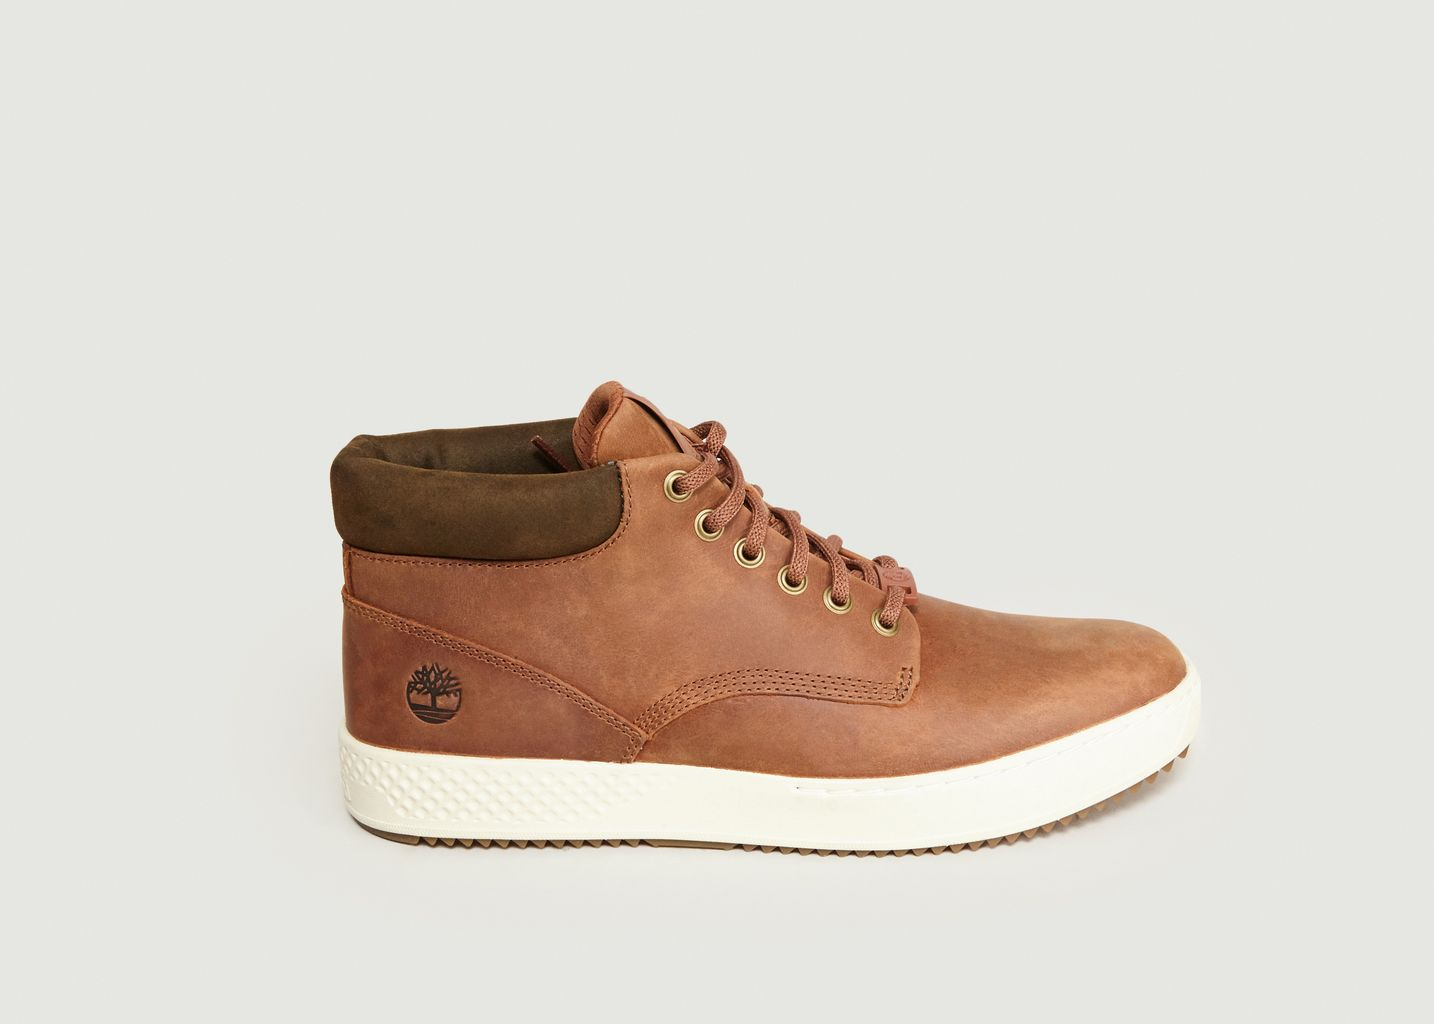 Cupsole Basse City Roam Boots Boots y7fY6gvb